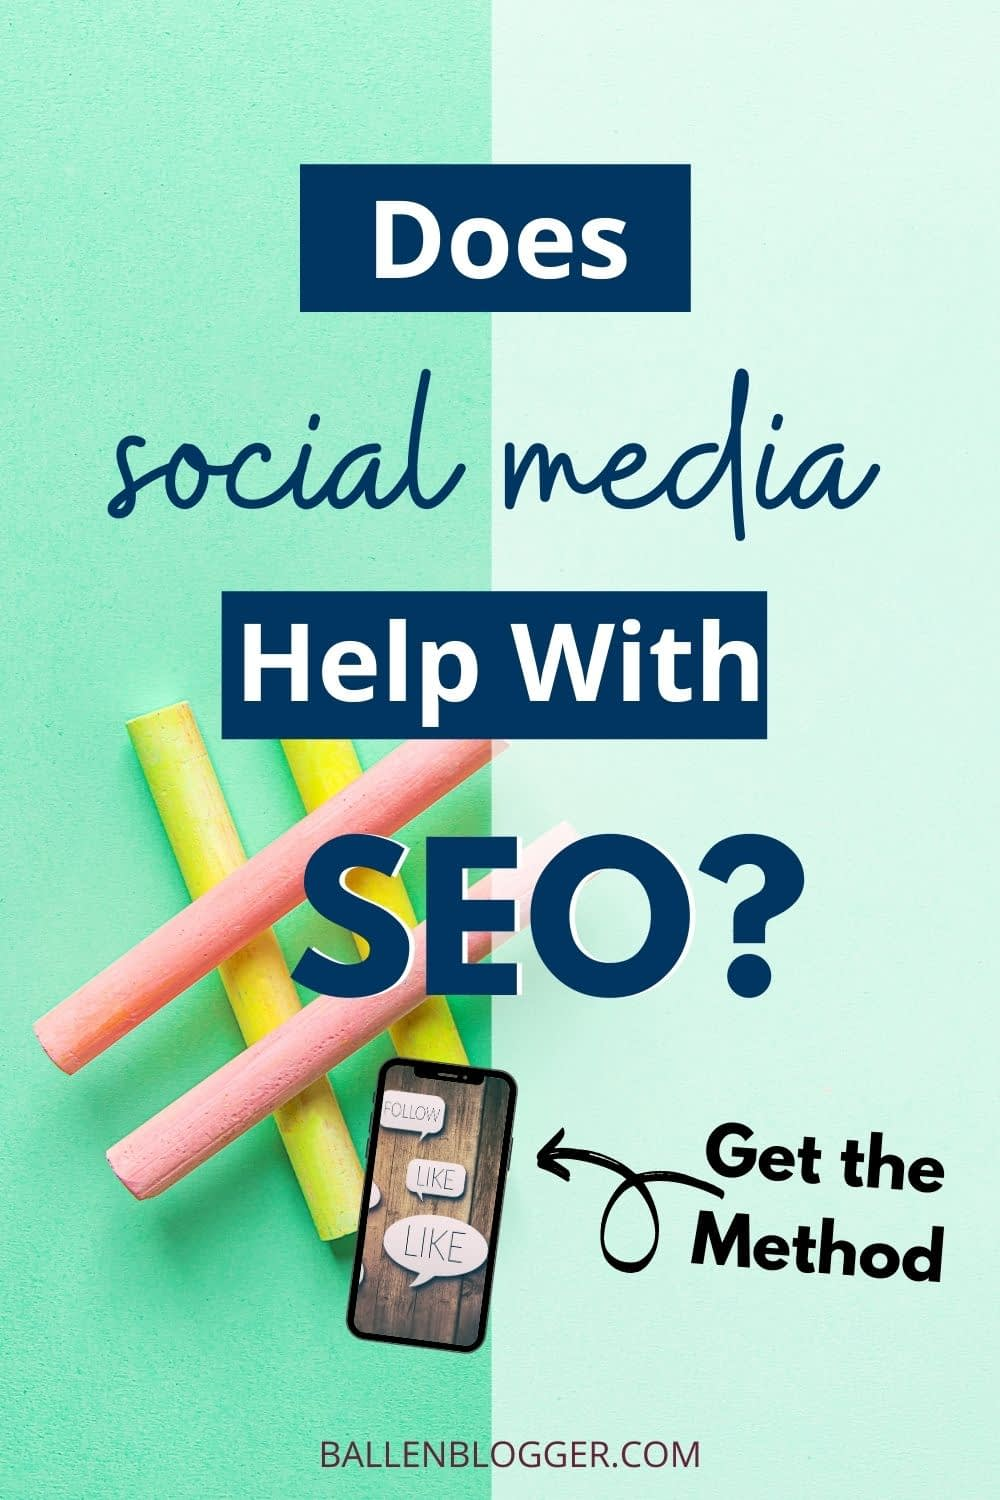 There's a strong connection between SEO ranking and social media. Thanks to its dynamic growth, social SEO is a powerful marketing tool. Focus on creating quality content, schedule your posts, be consistent, and use paid promotion.